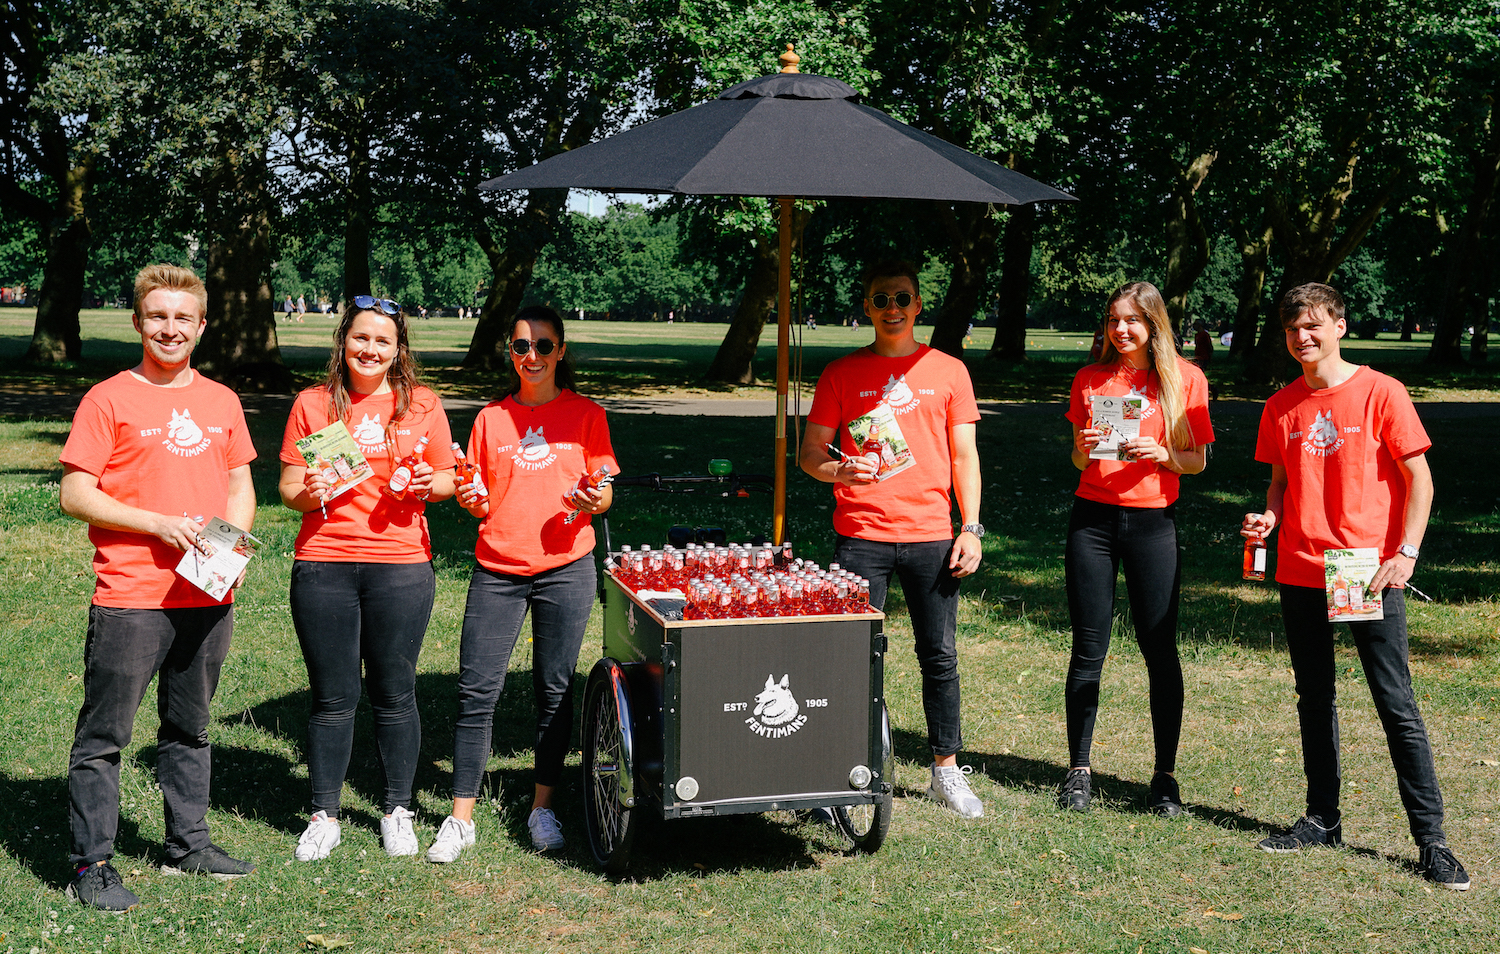 Quirky Group Brand Ambassadors Fentimans product launch